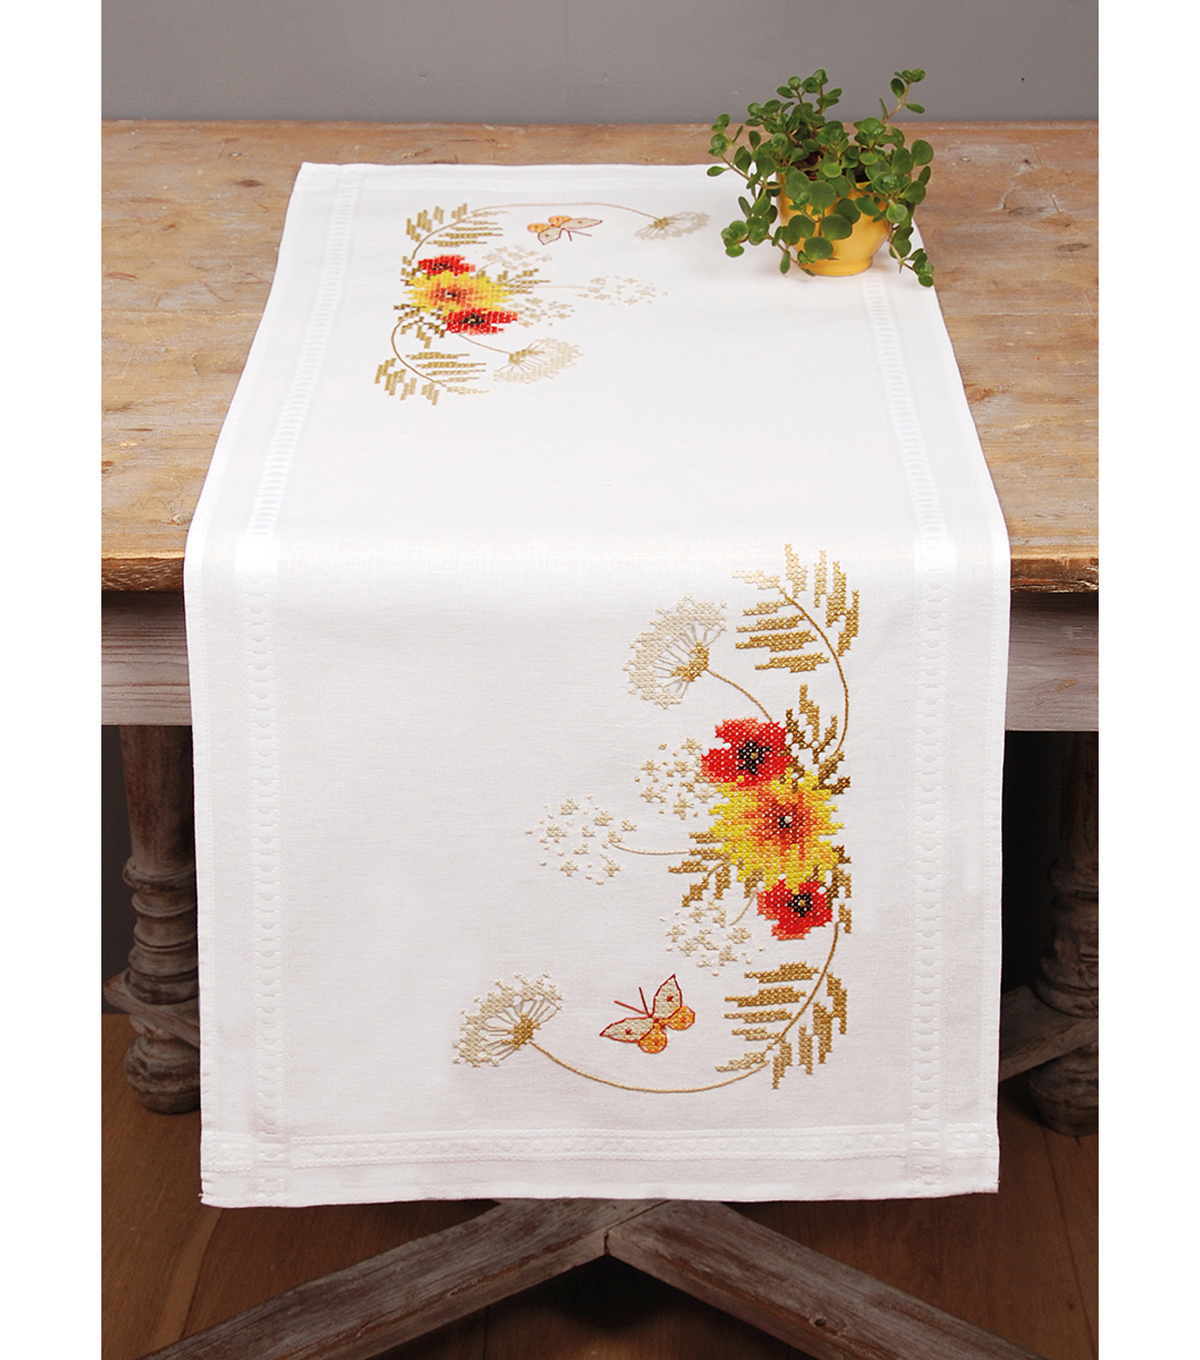 Sunflowers & Poppies Table Runner Counted Cross Stitch Kit